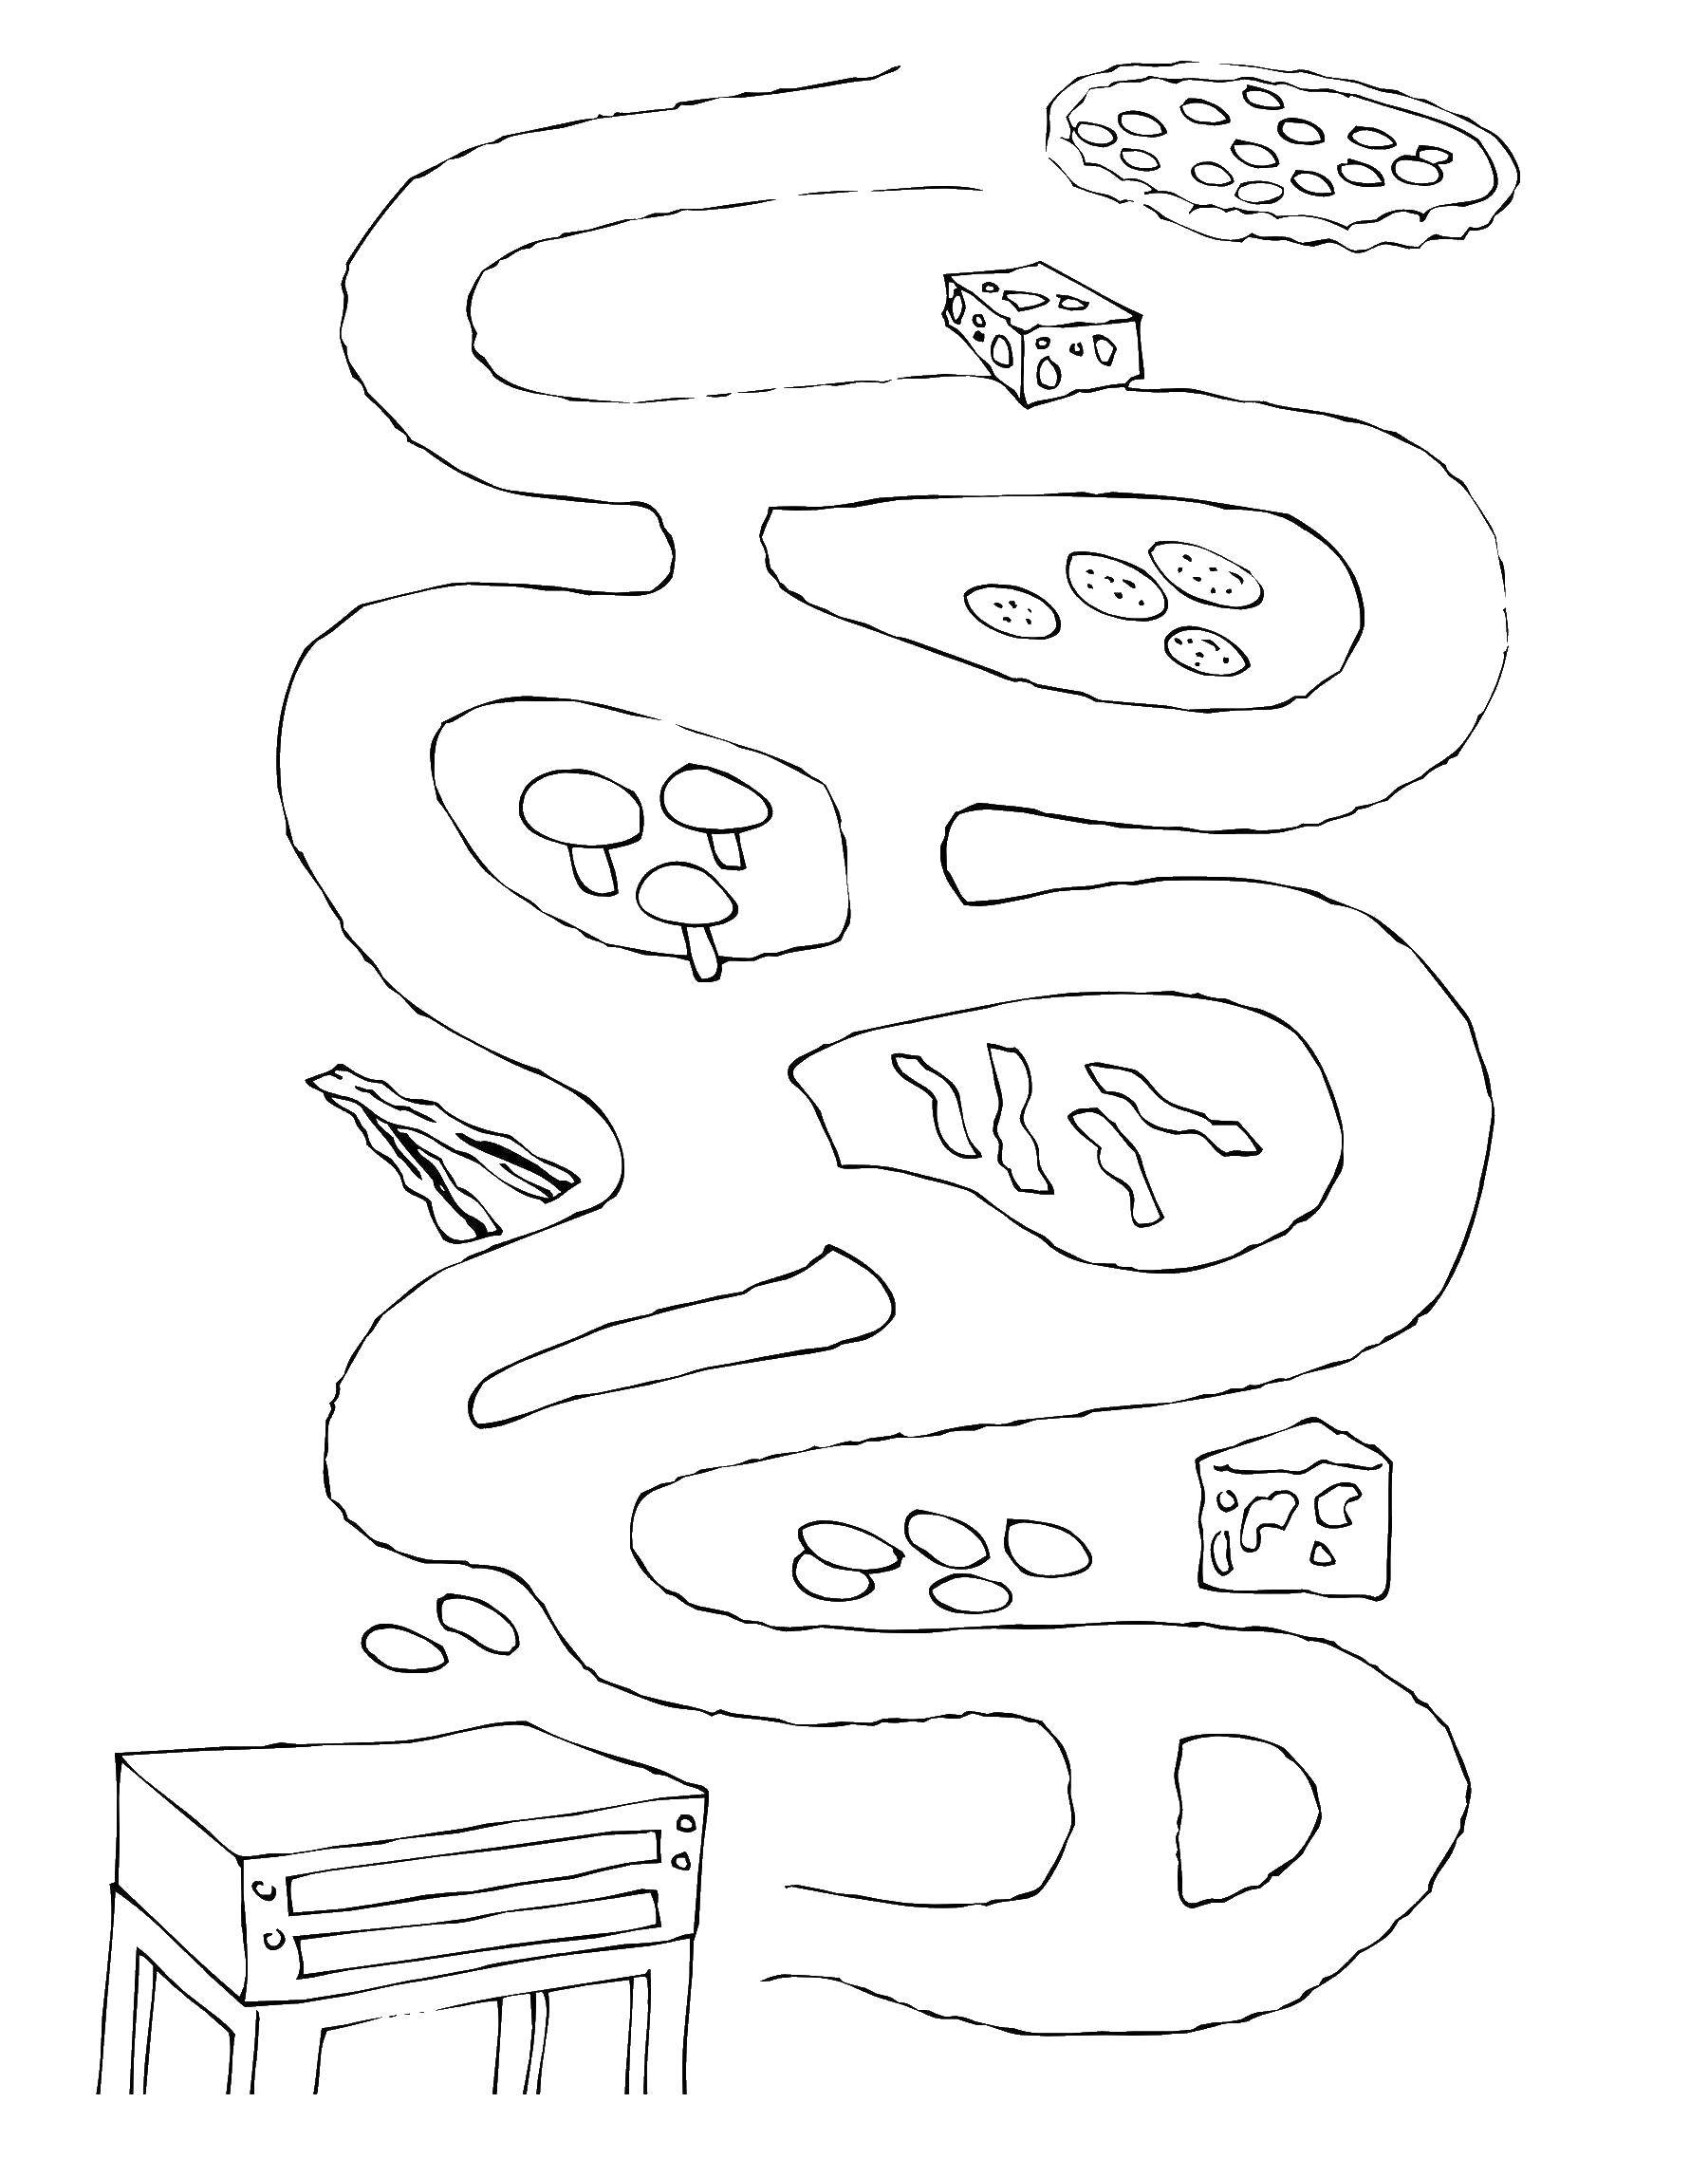 Coloring sheet mazes Download School supplies.  Print ,school supplies,